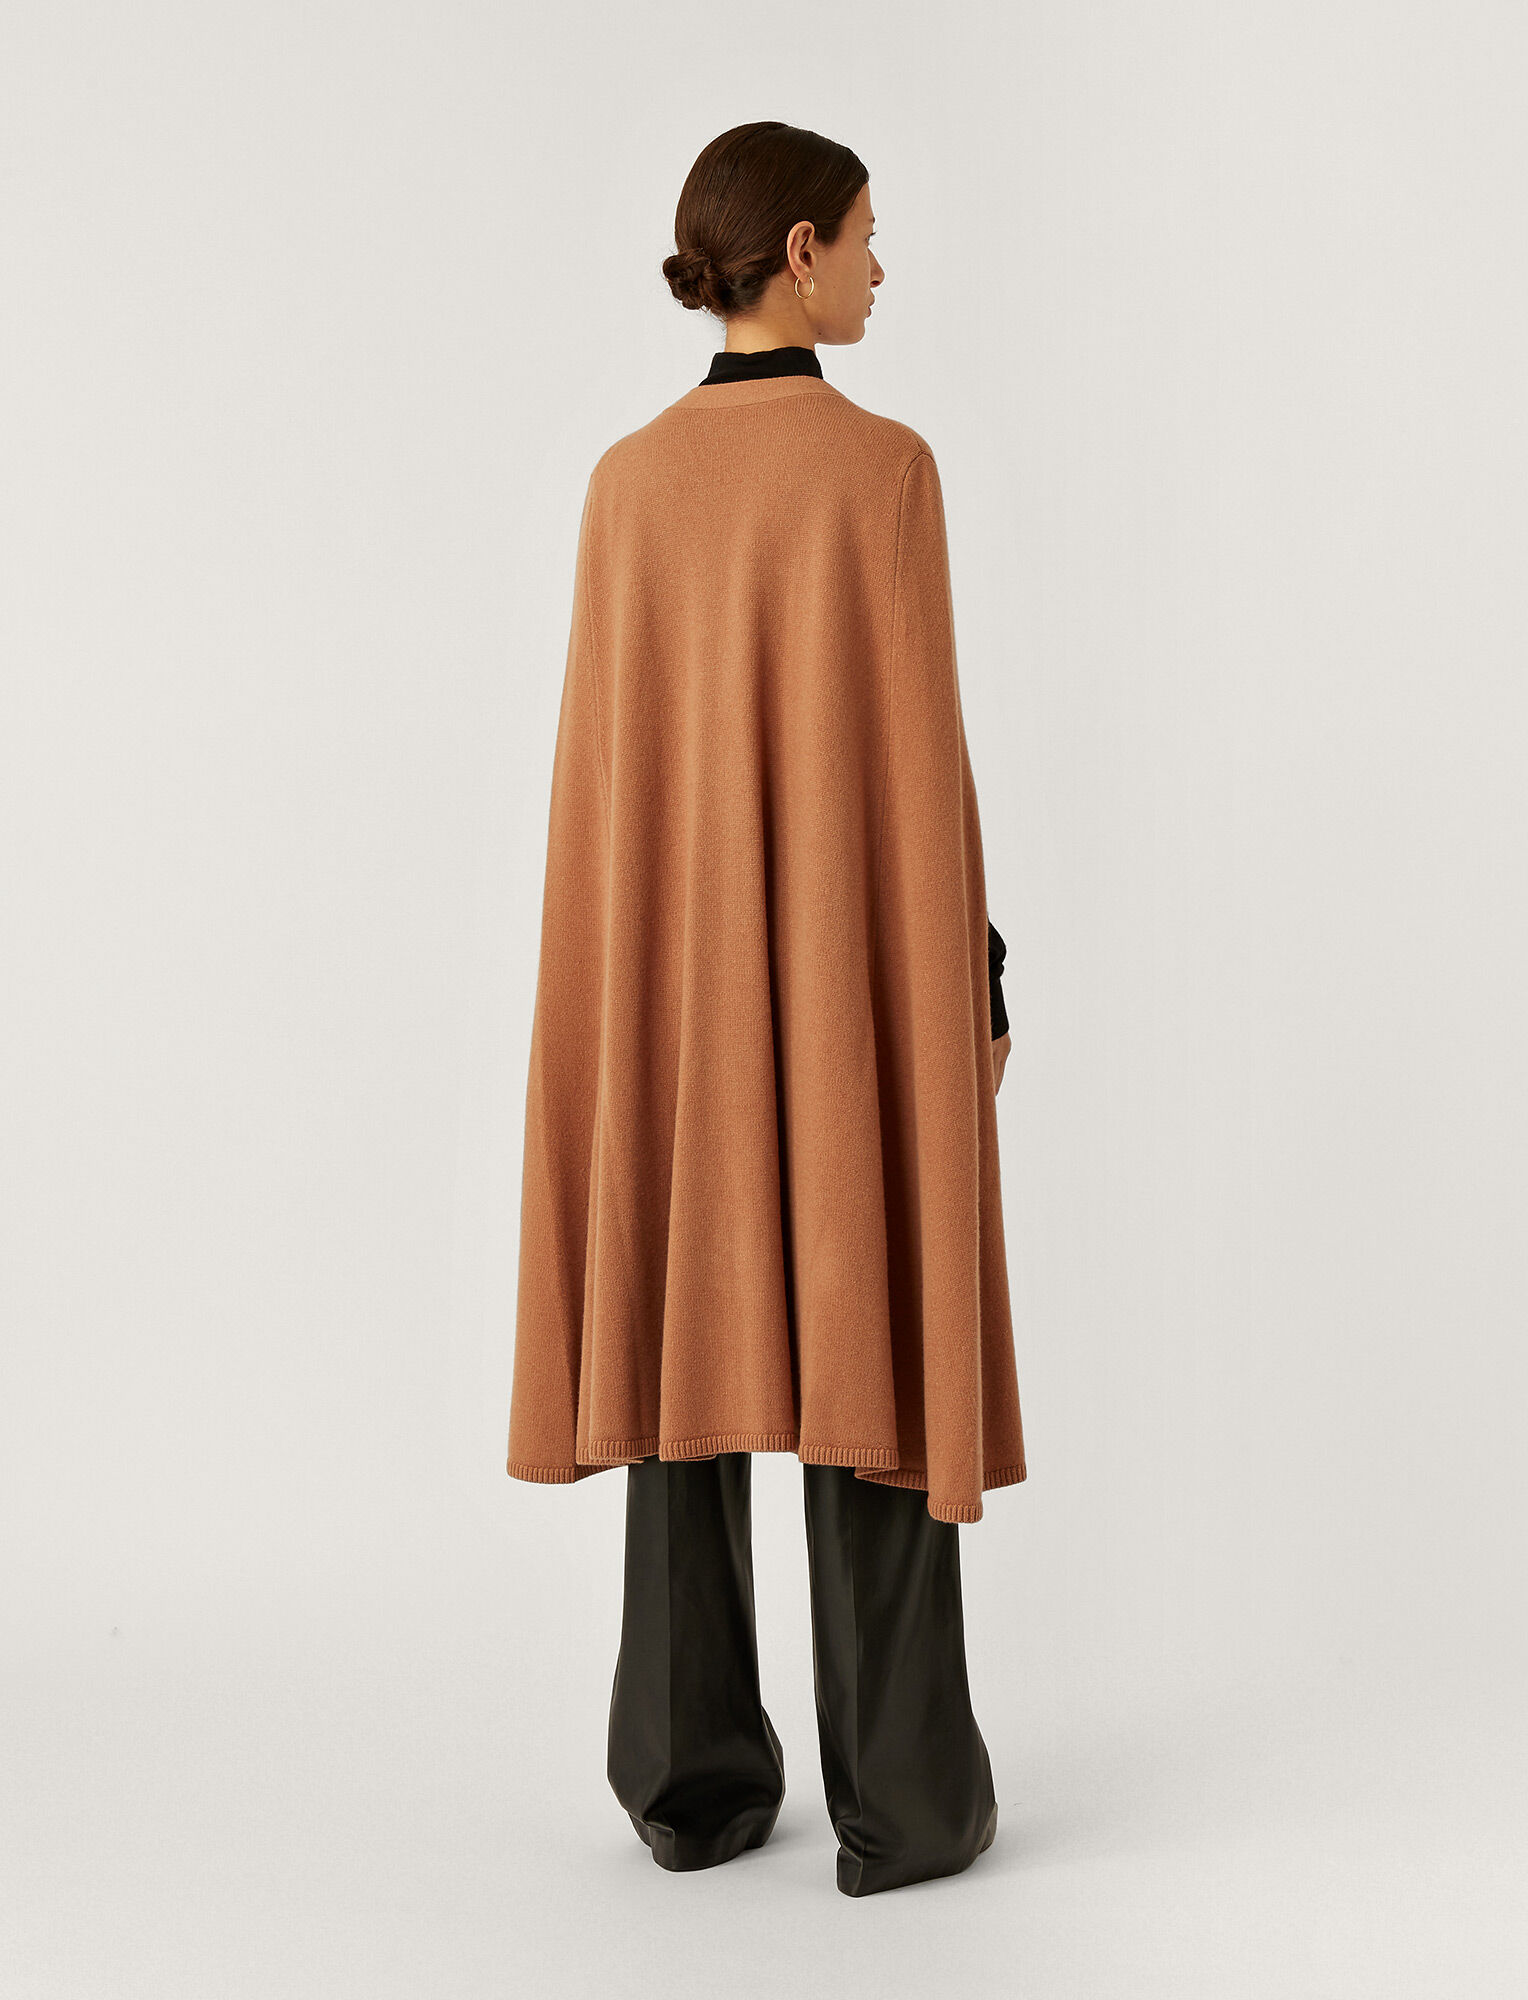 Joseph, Cape Soft Wool Knit, in Cognac